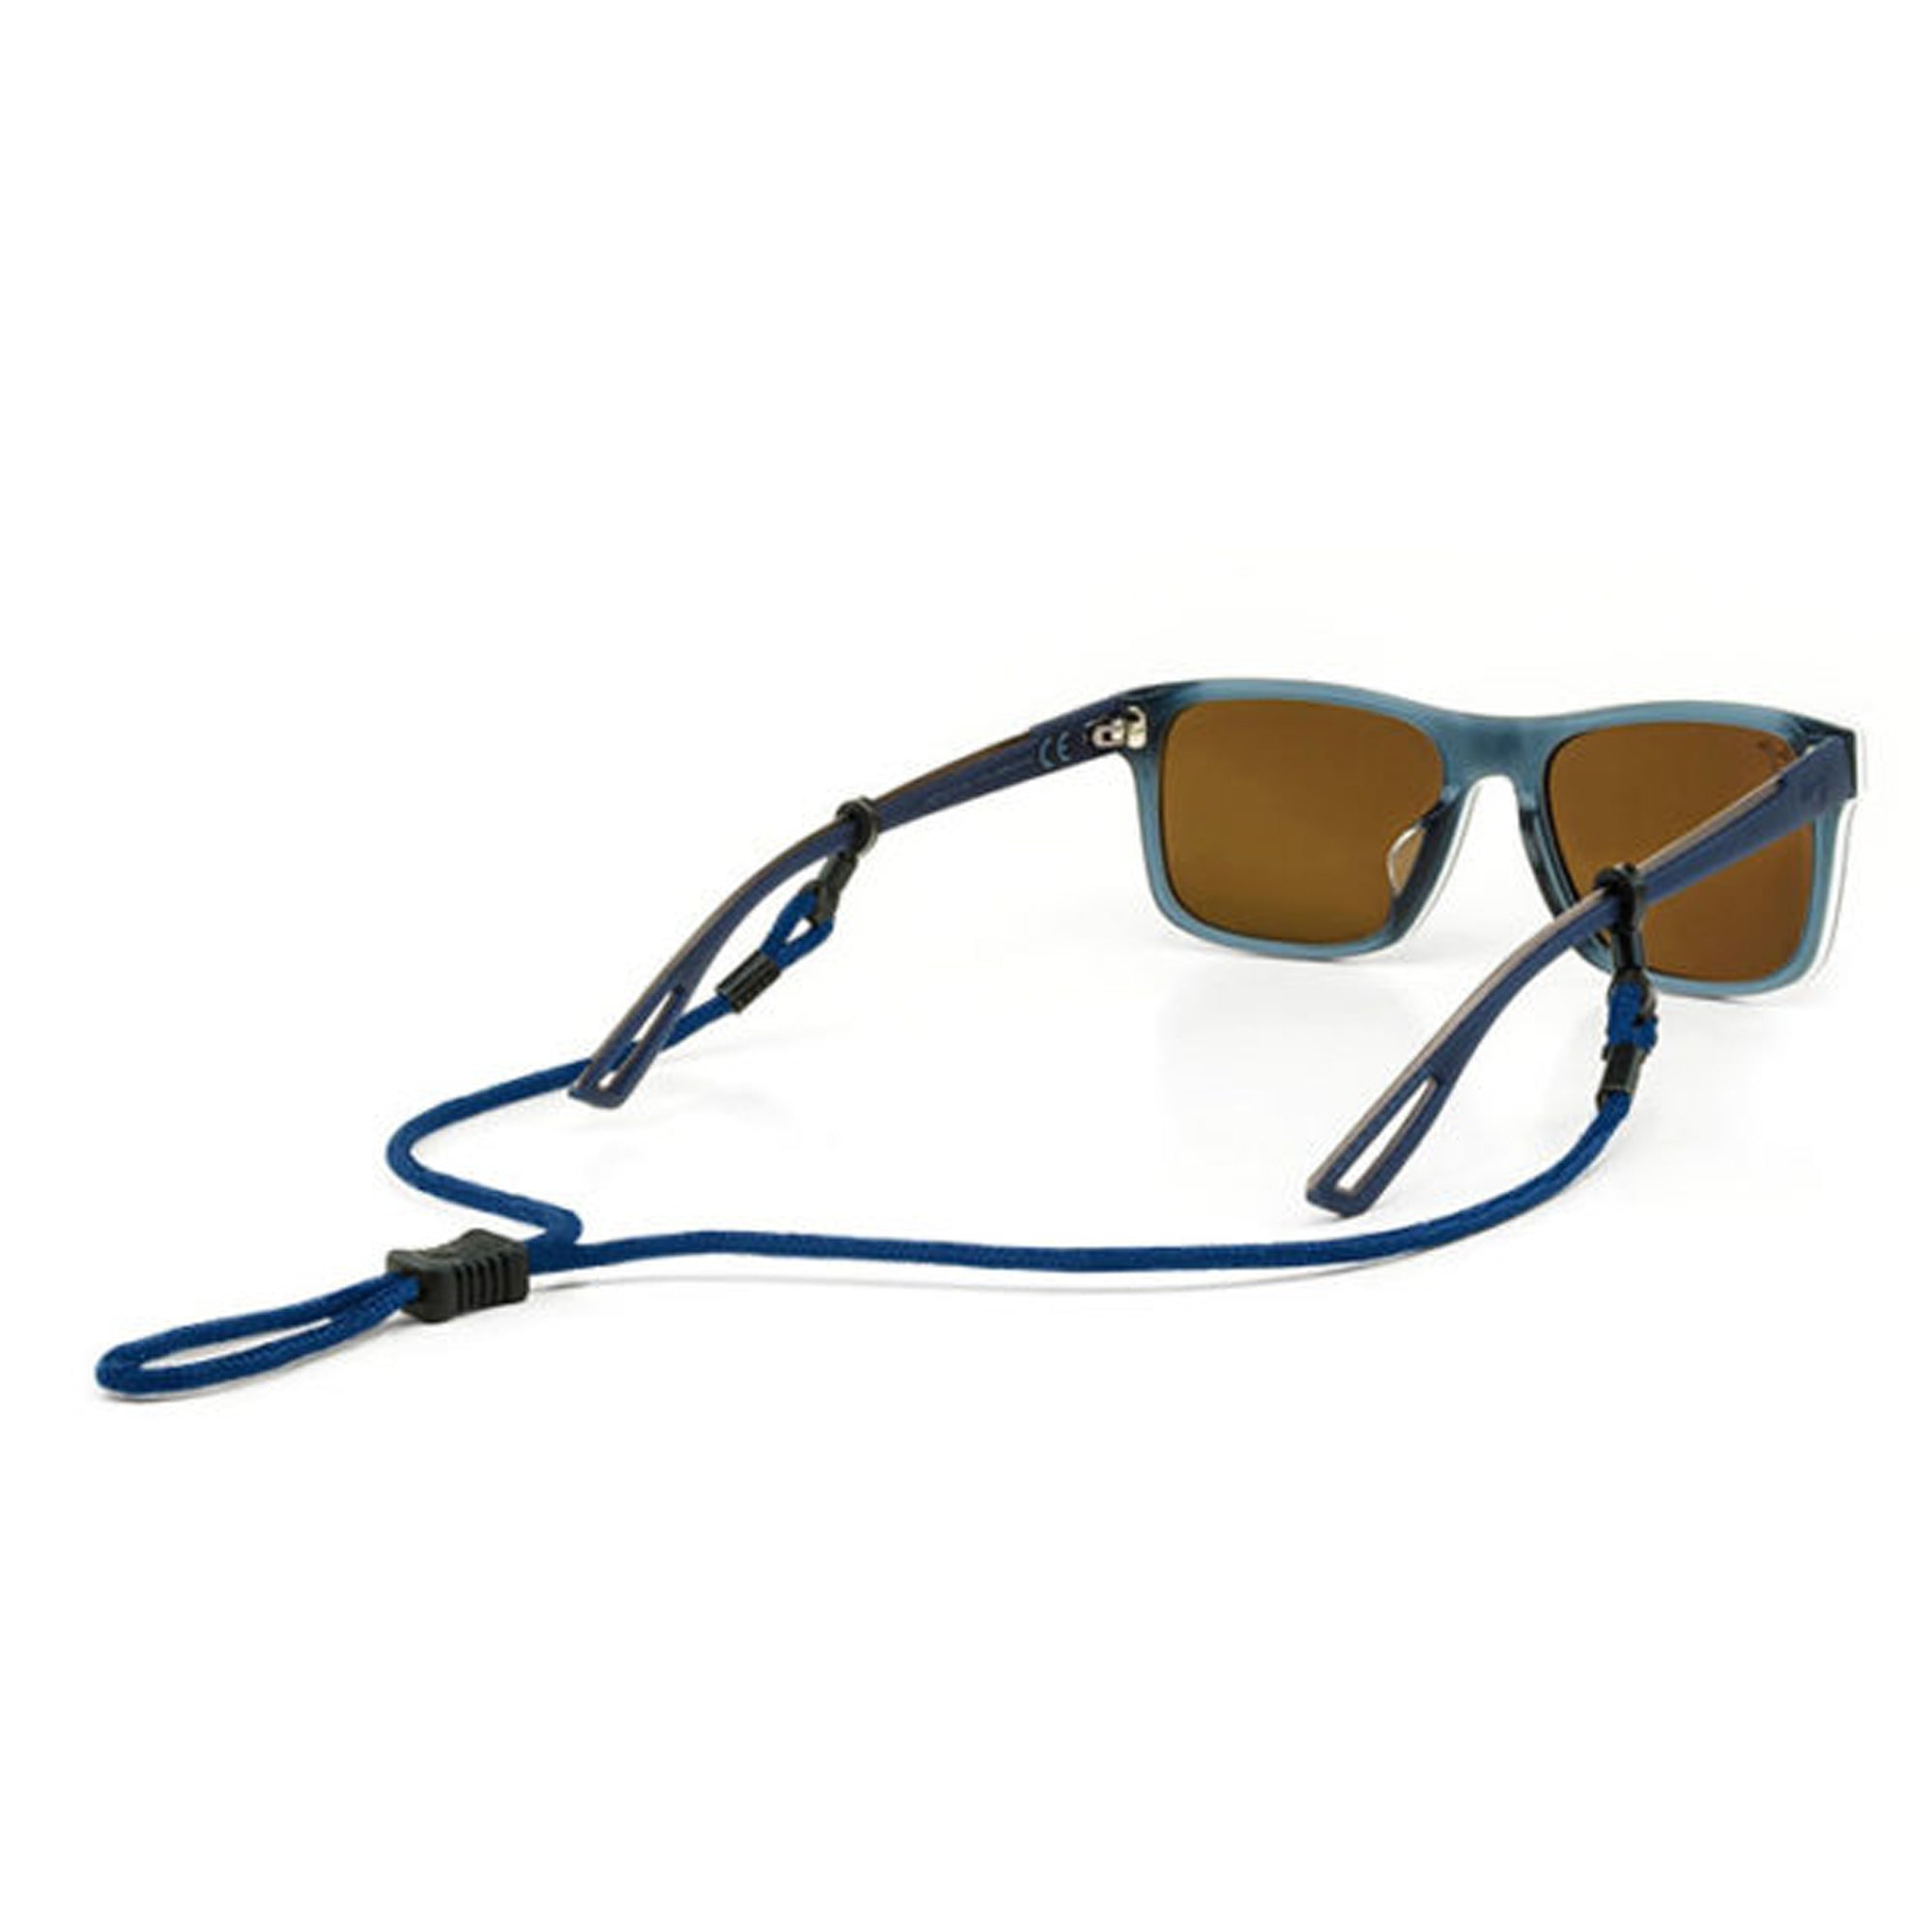 Croakies Terra Spec Cords Adjustable Eyewear Retainers